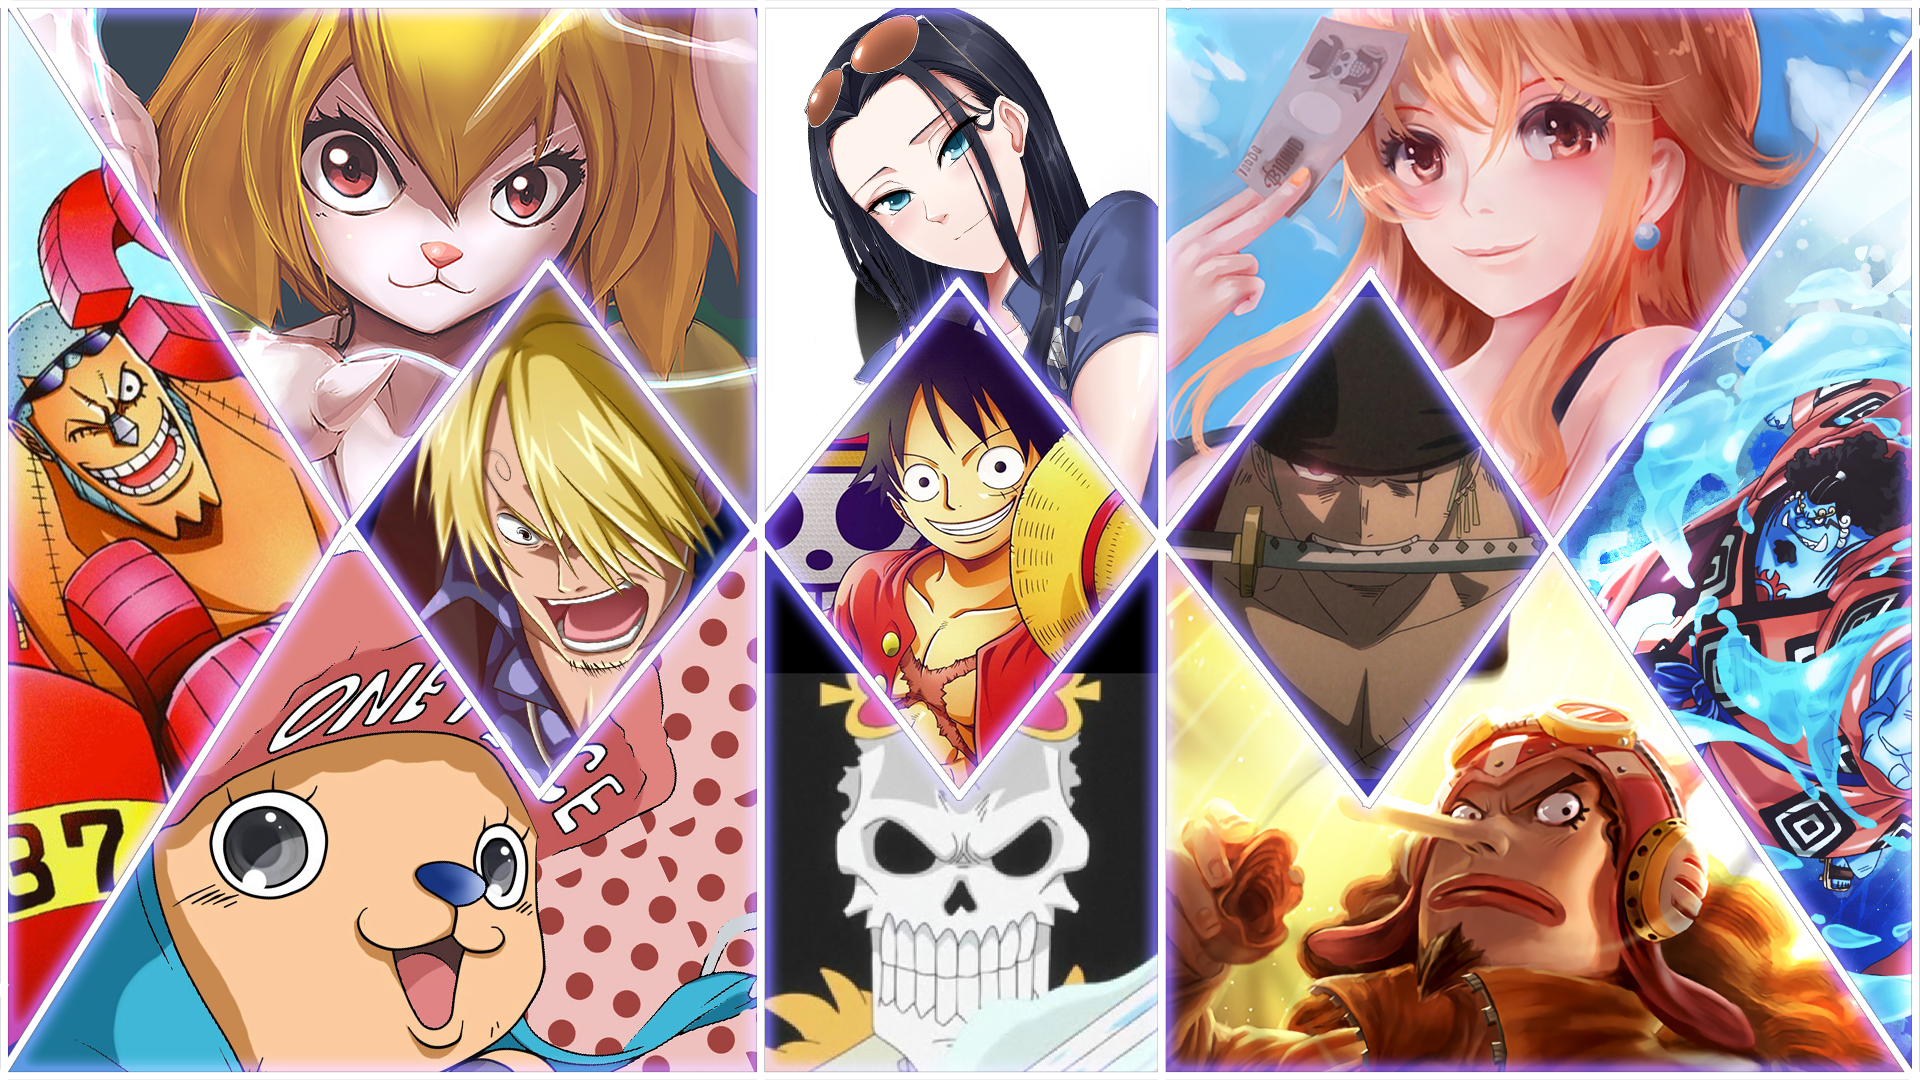 20 Carrot One Piece Hd Wallpapers Background Images Wallpaper